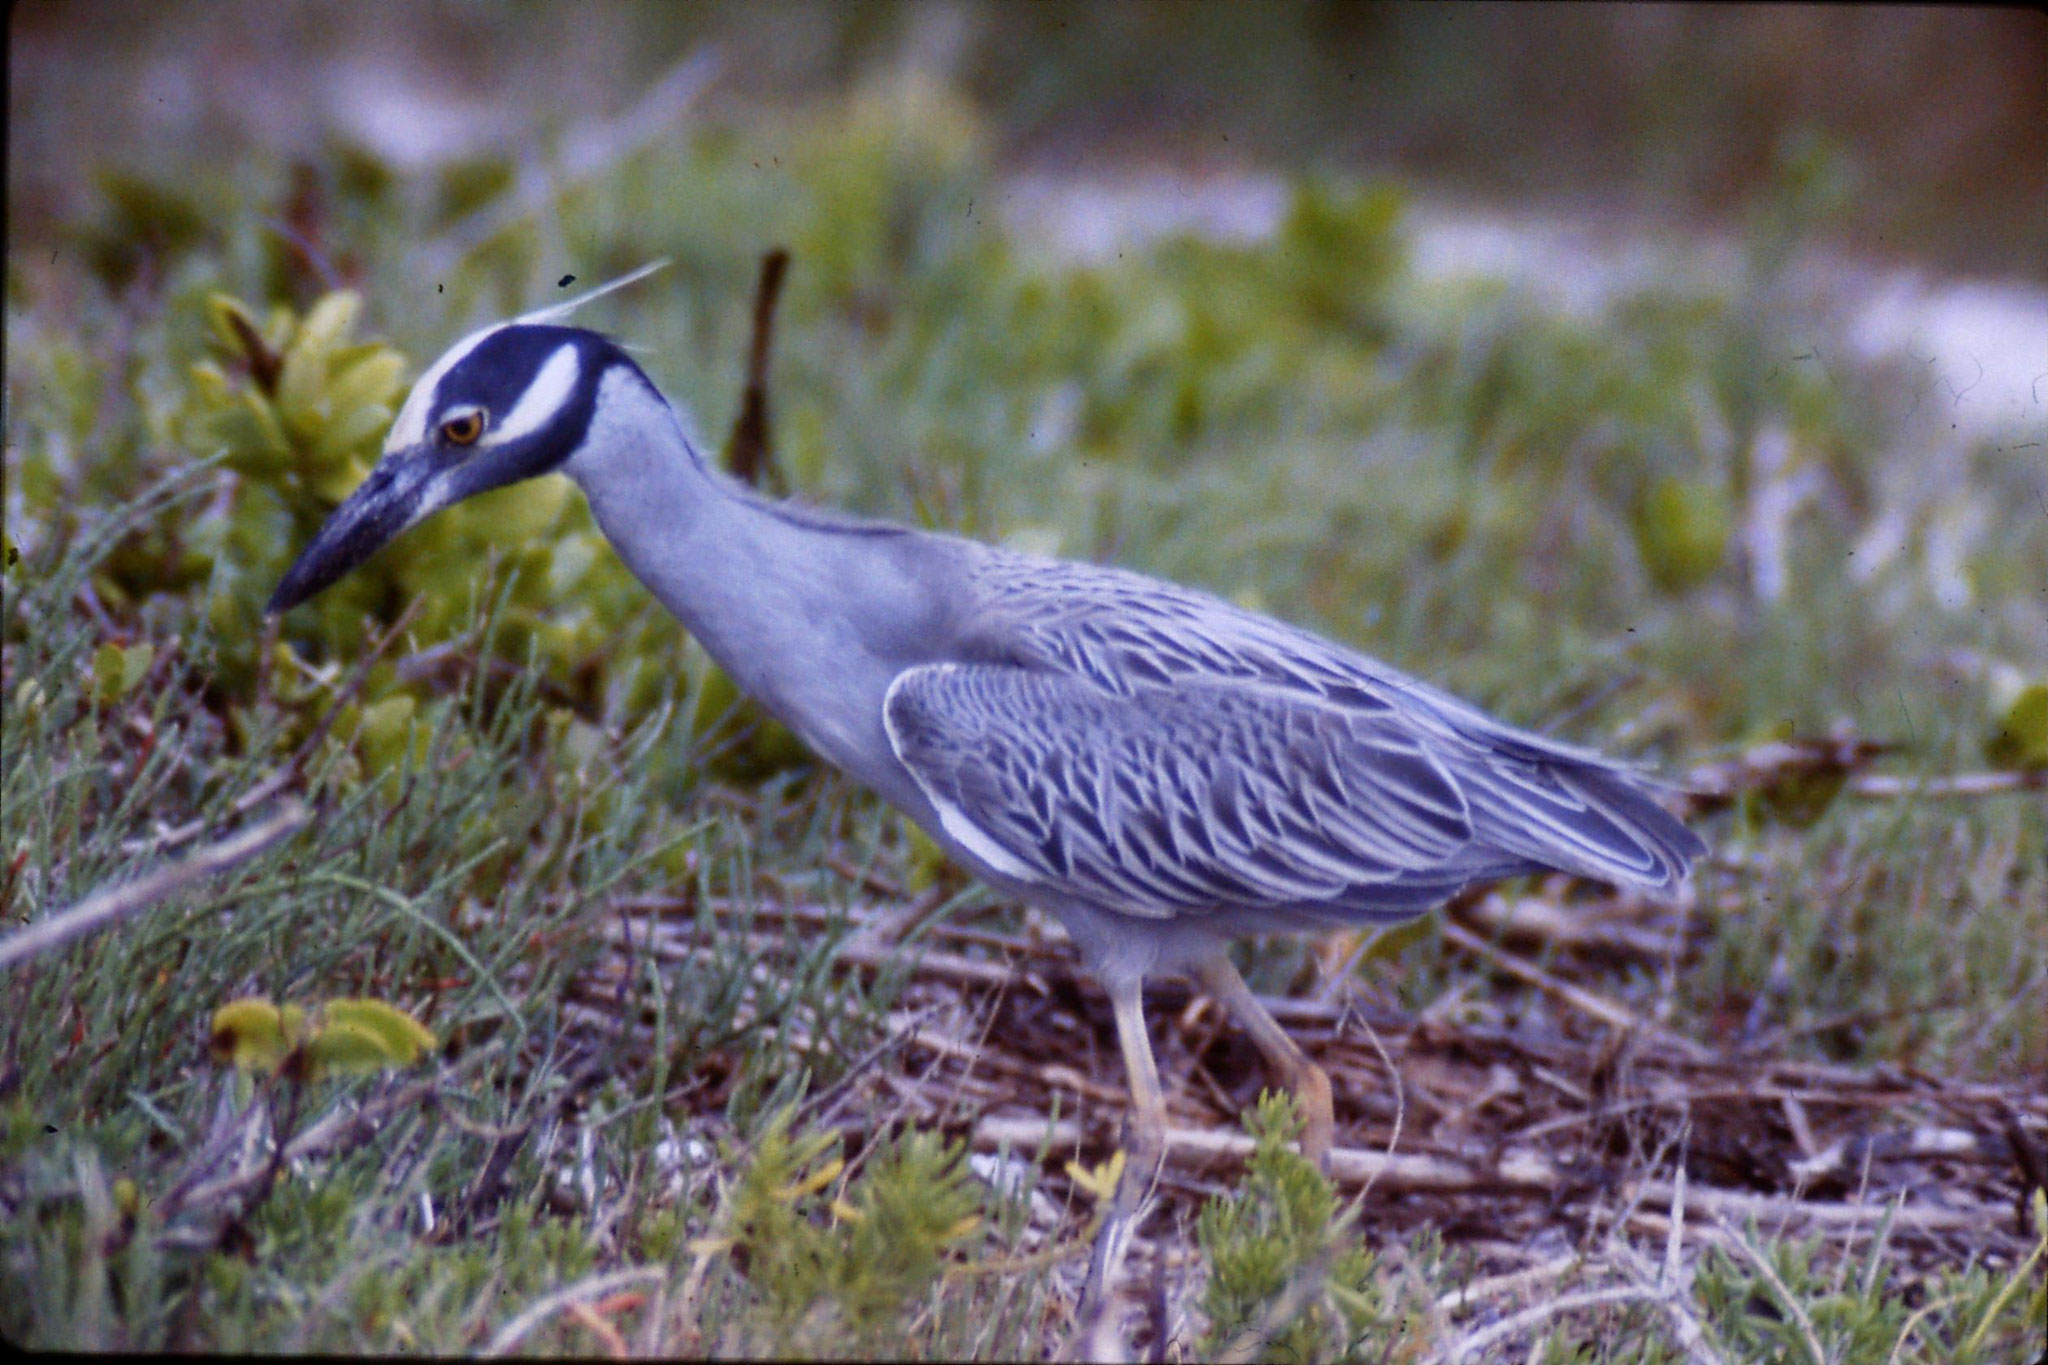 25/2/1991: 0: Sanibel Florida yellow crowned night heron